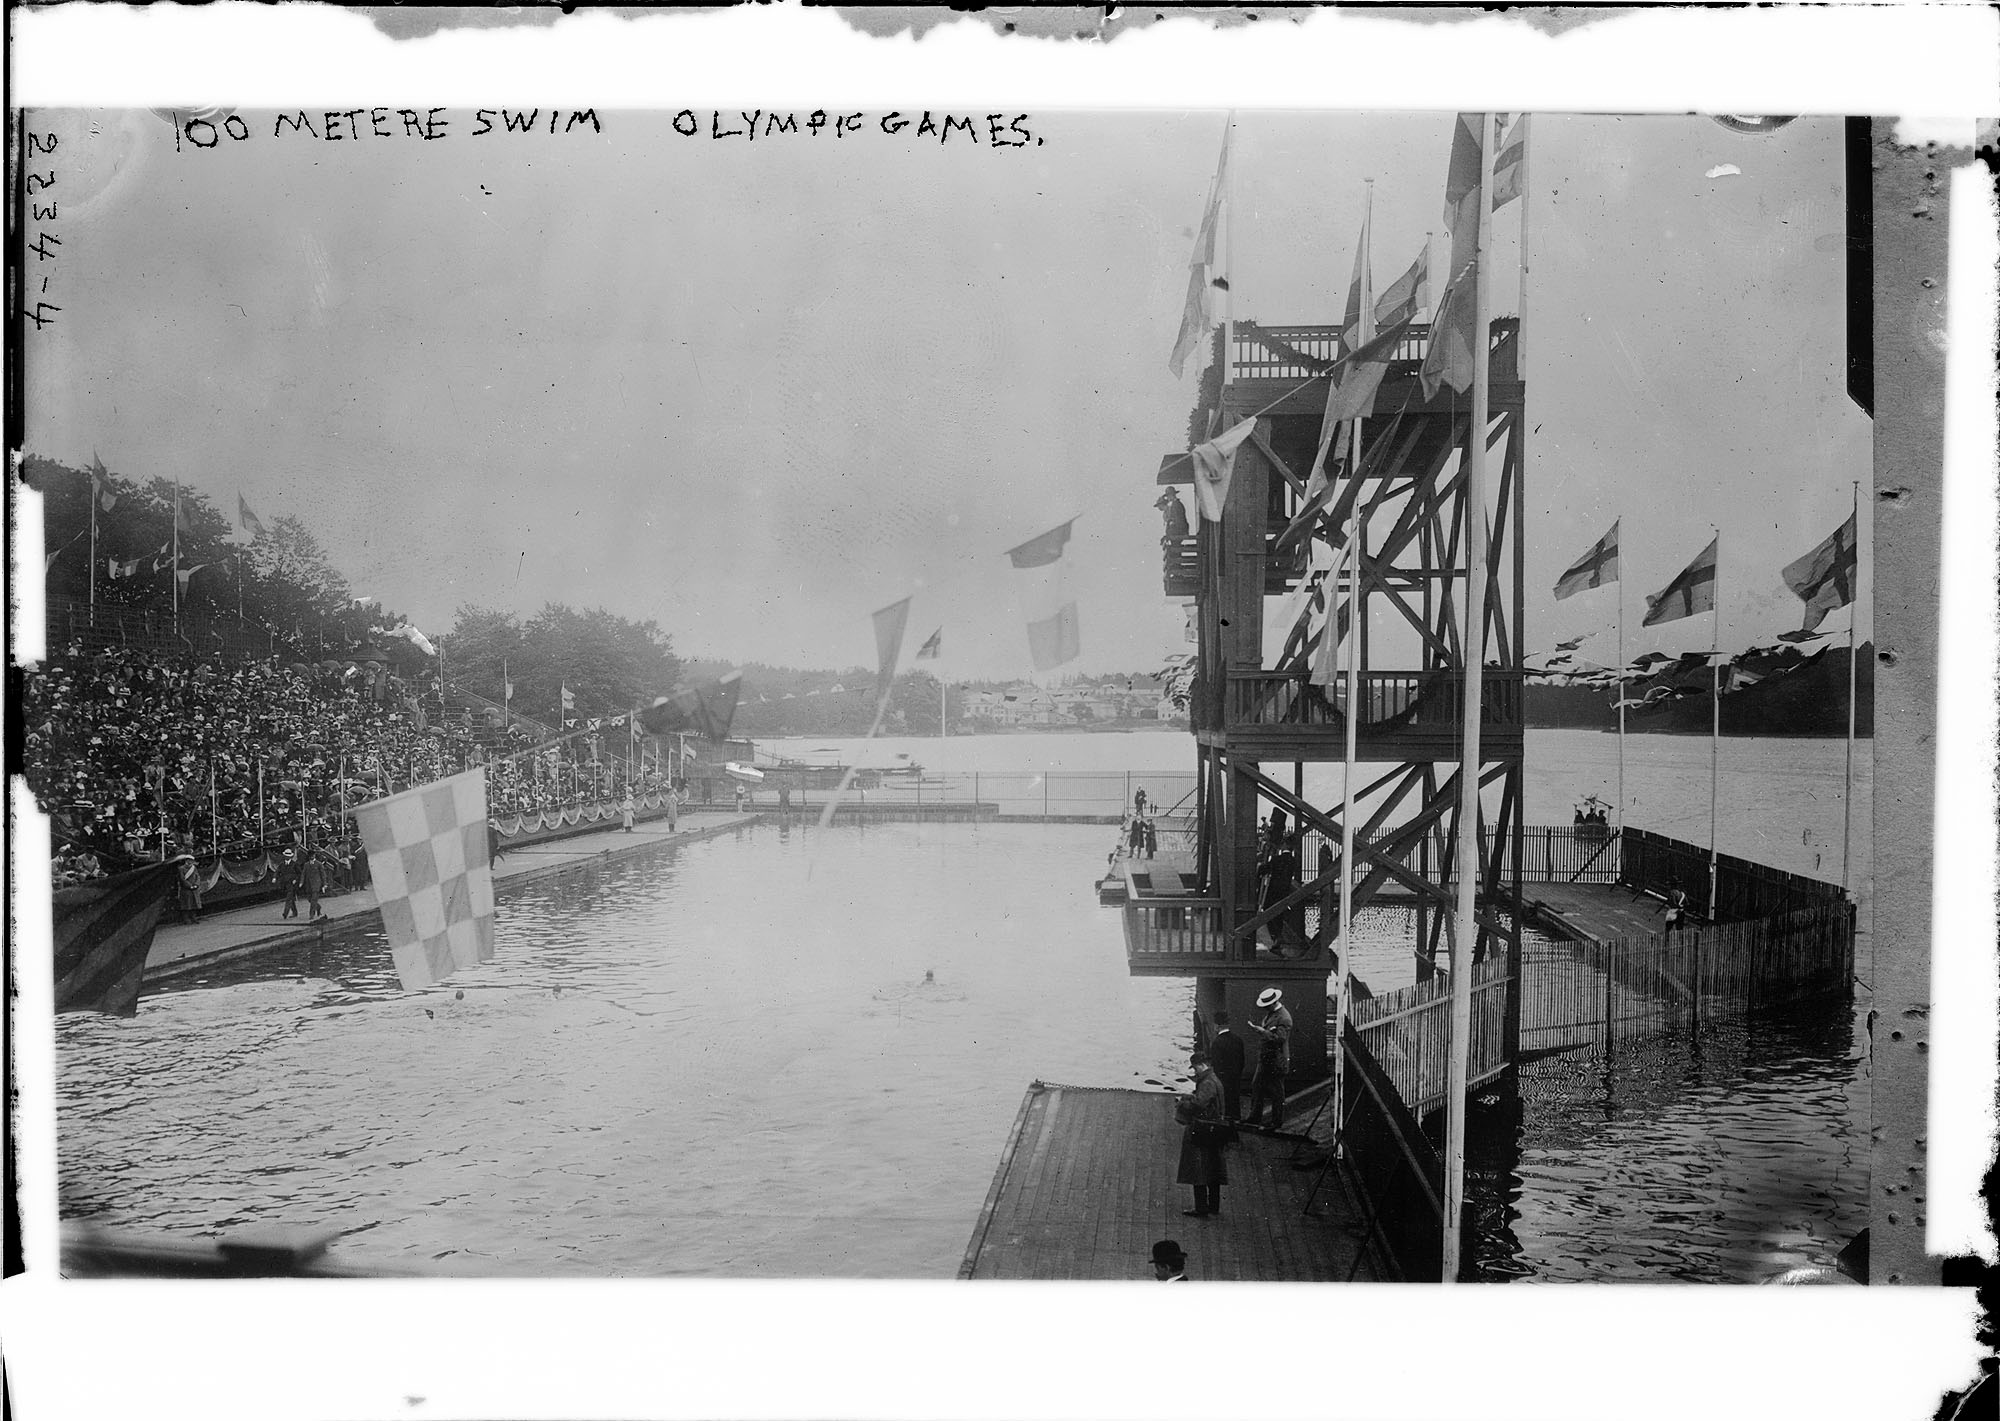 1912 Summer Olympics in Stockholm, Sweden - 100-meter swim